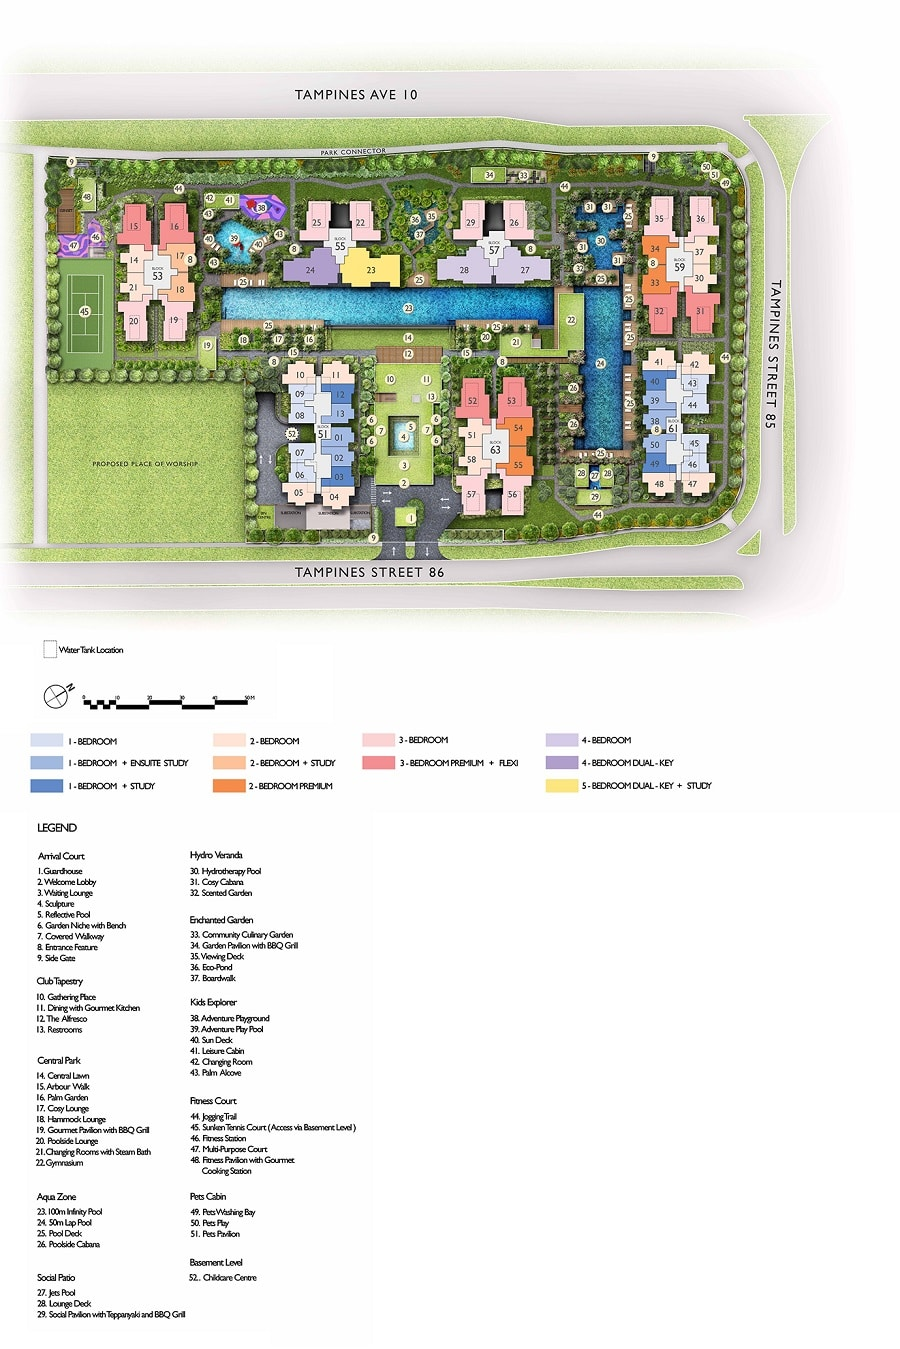 The Tapestry 荟绵嘉园 Site Plan